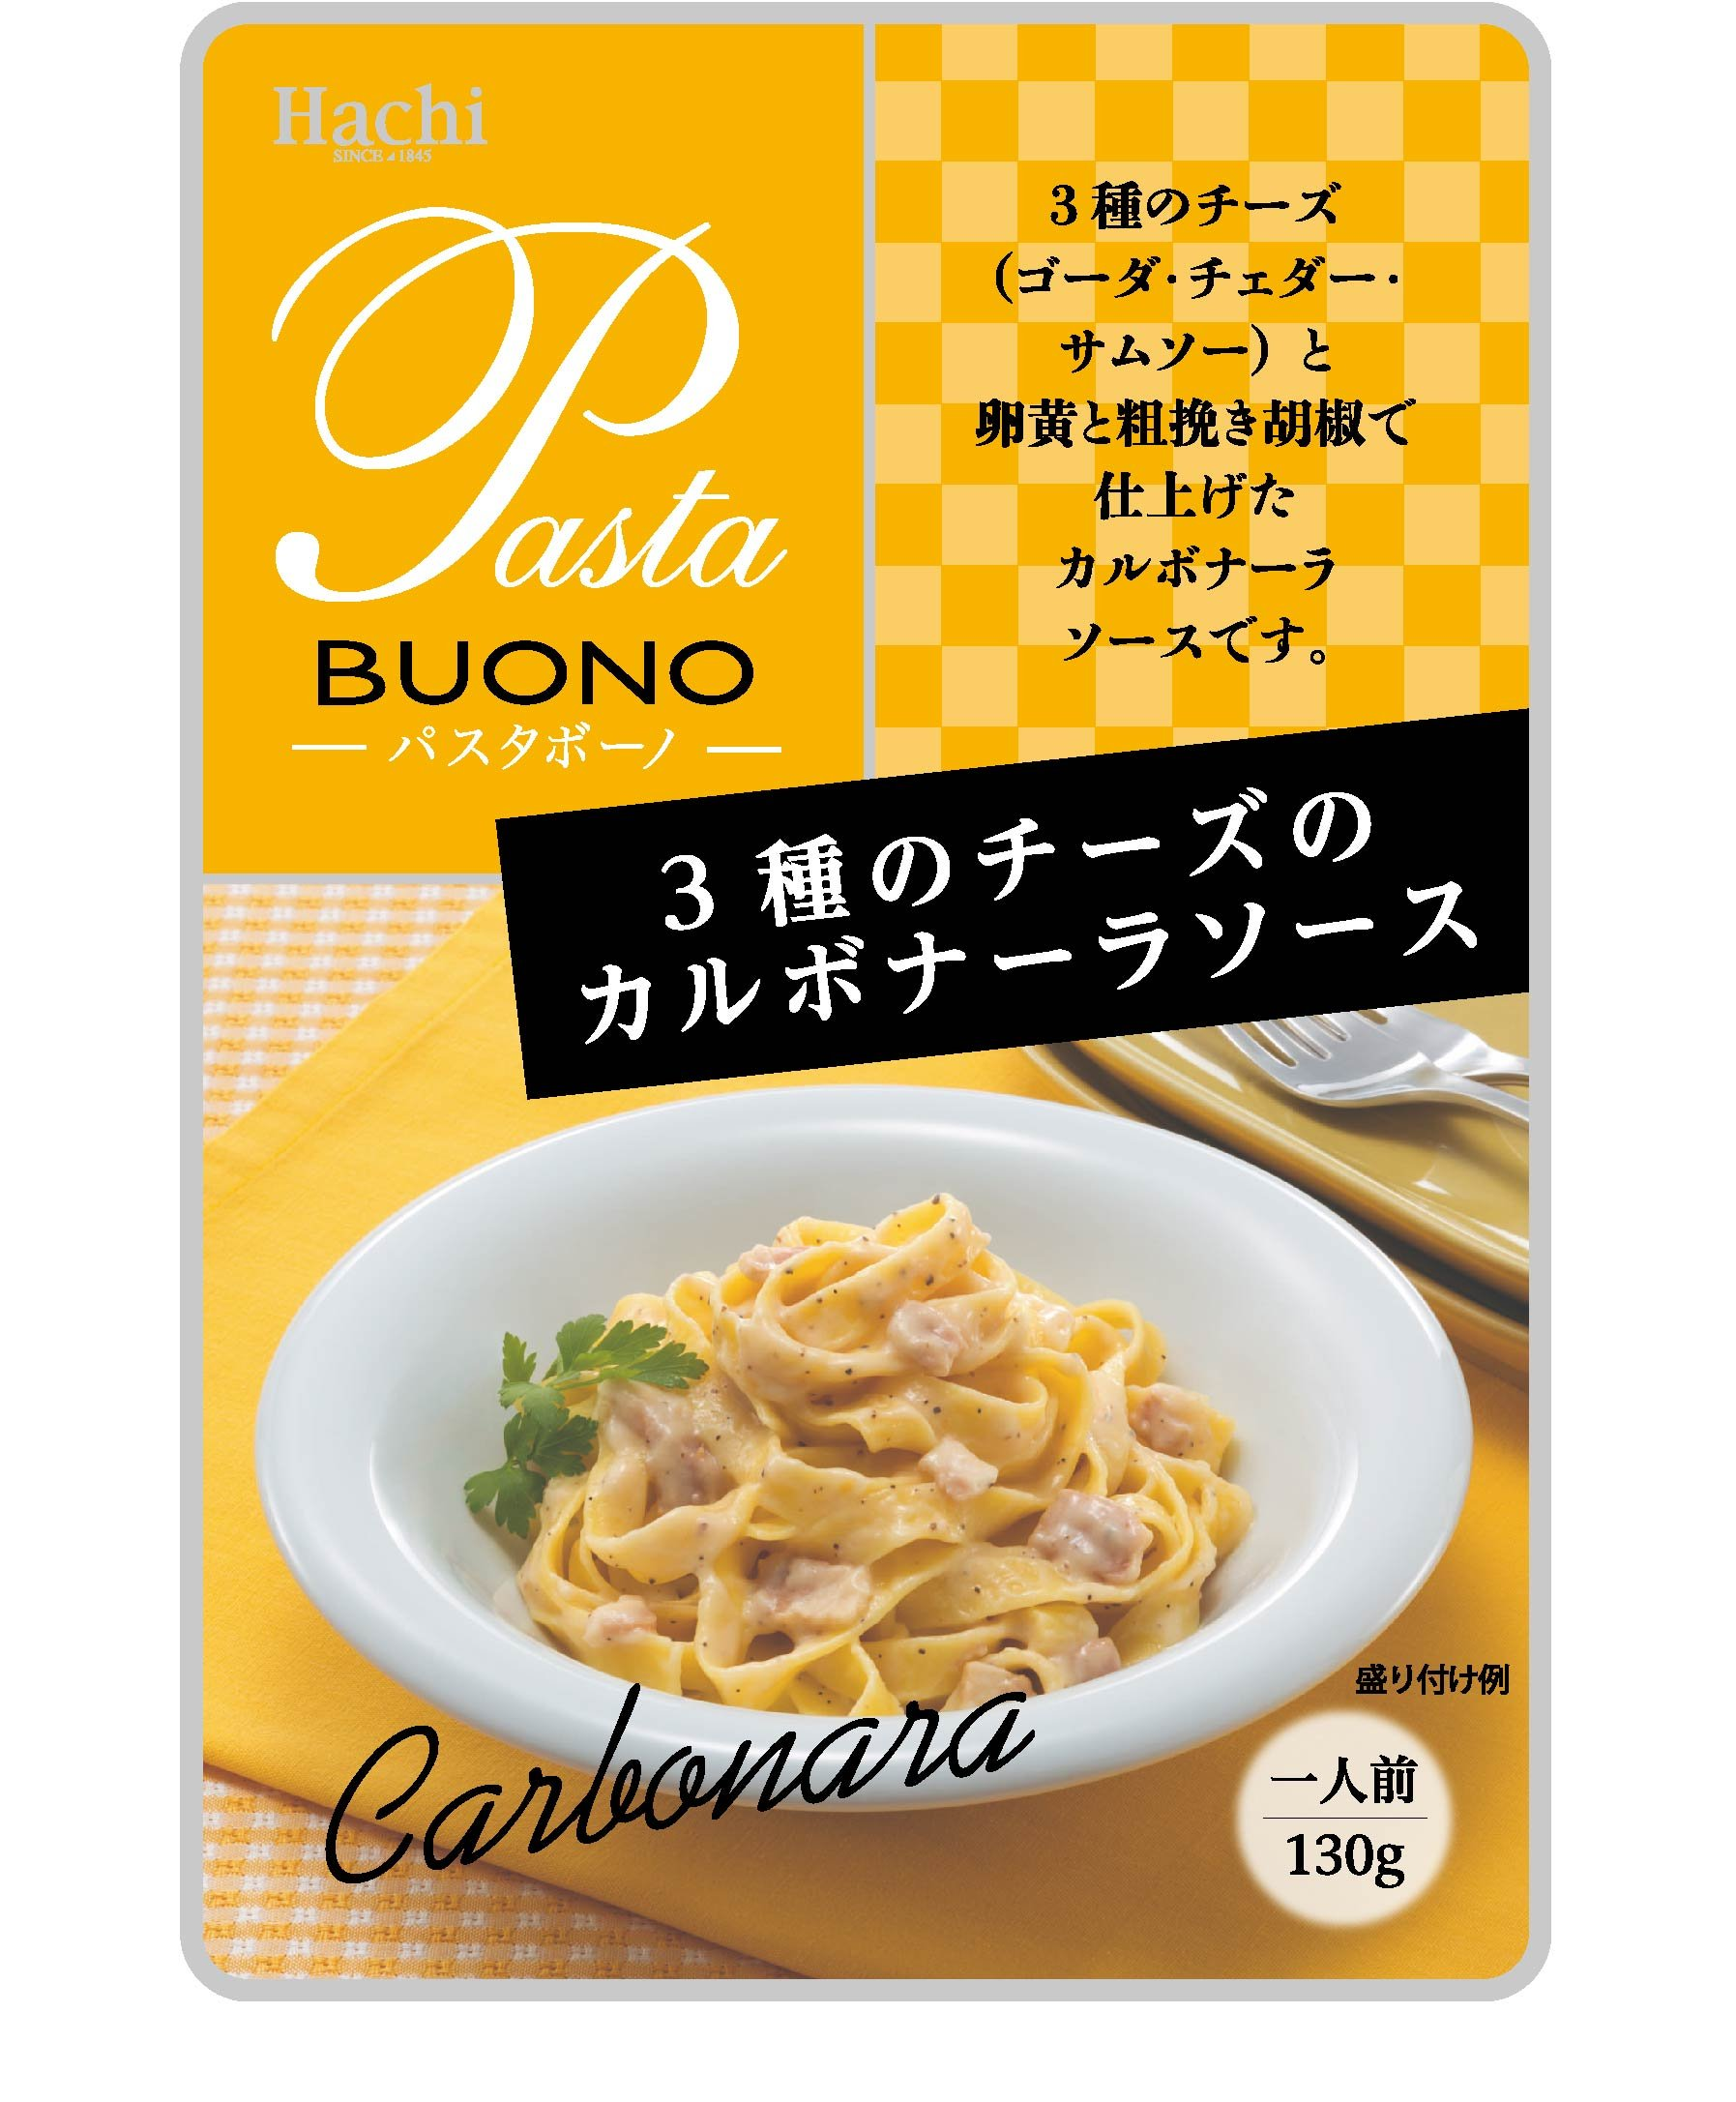 130gX12 pieces carbonara source of bee three cheese by Bee food